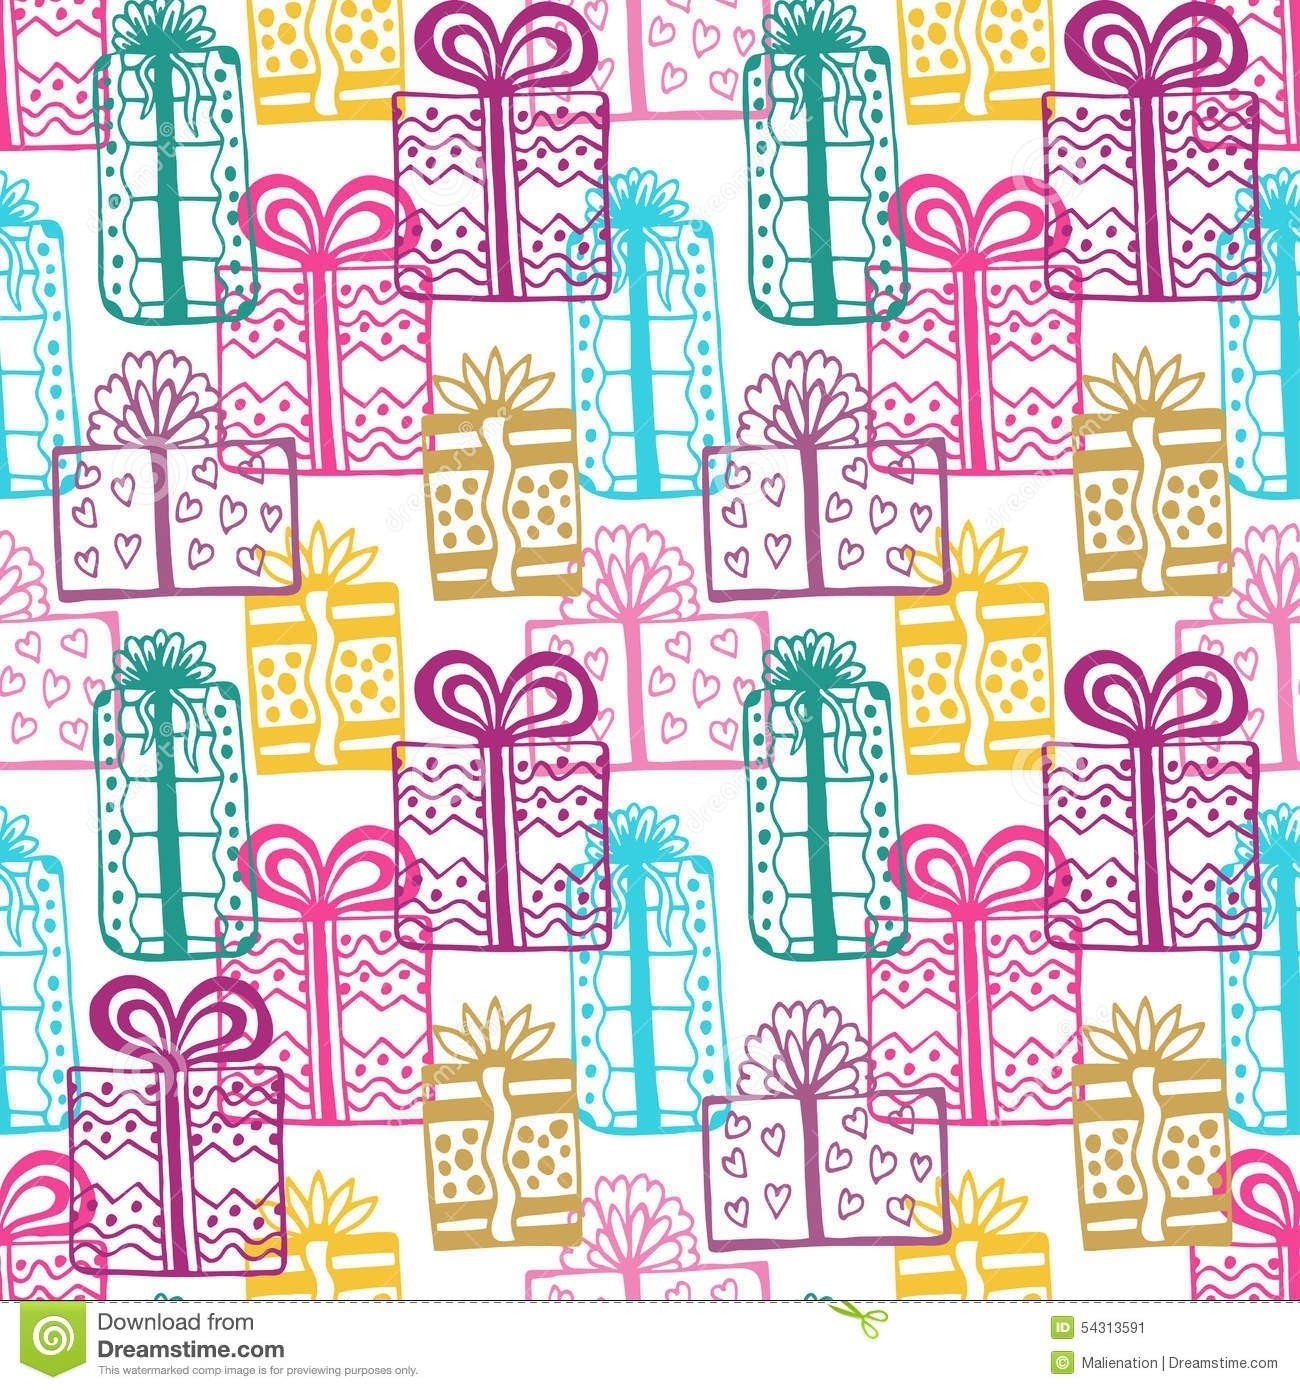 Birthday Gift Wrapper Design Pattern | World Of Example within Birthday Gift Wrapper Design Pattern 29522